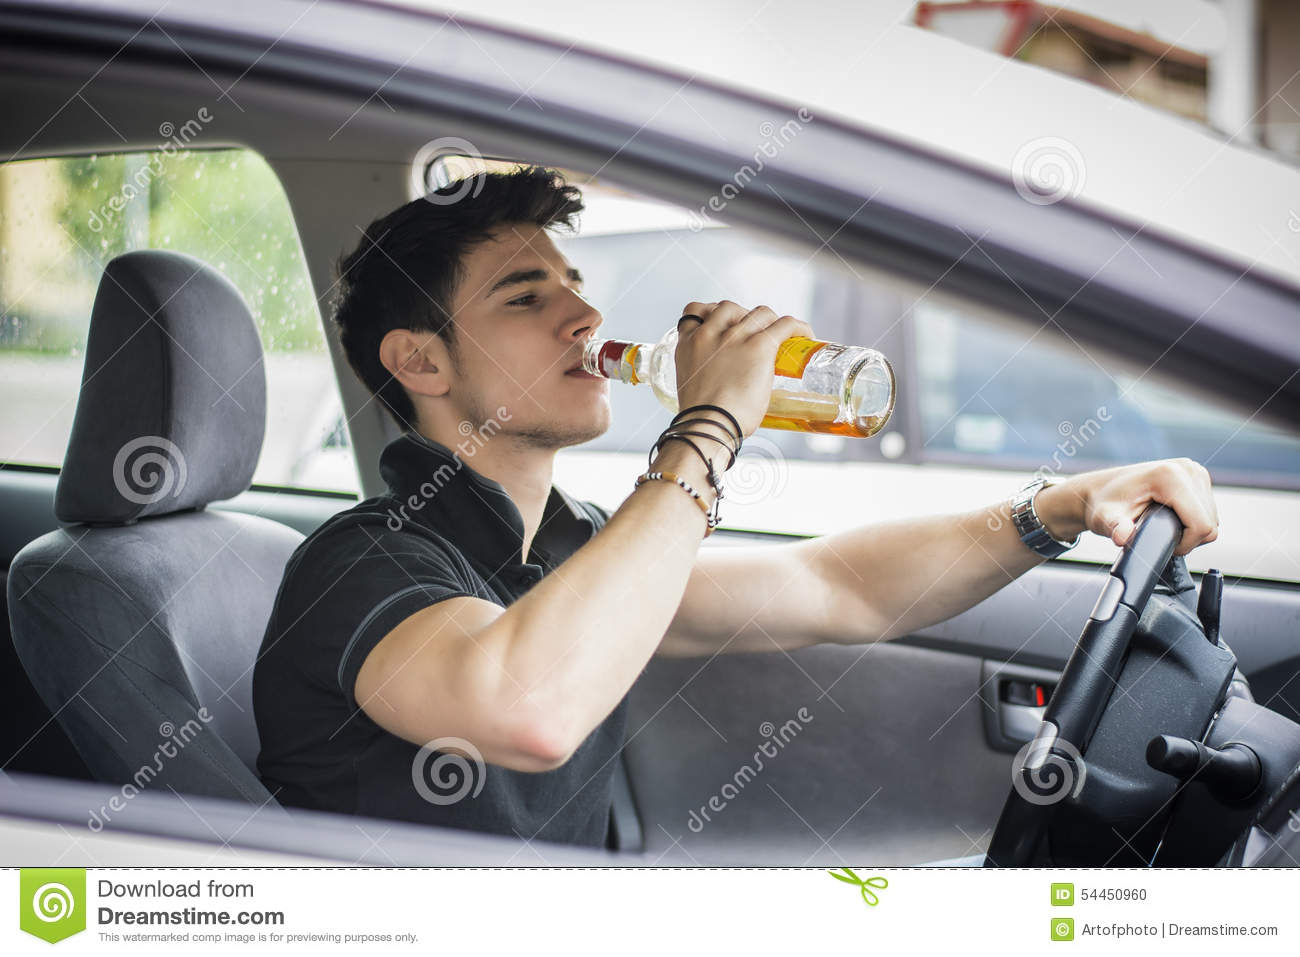 Young man driving his car while drinking alcohol